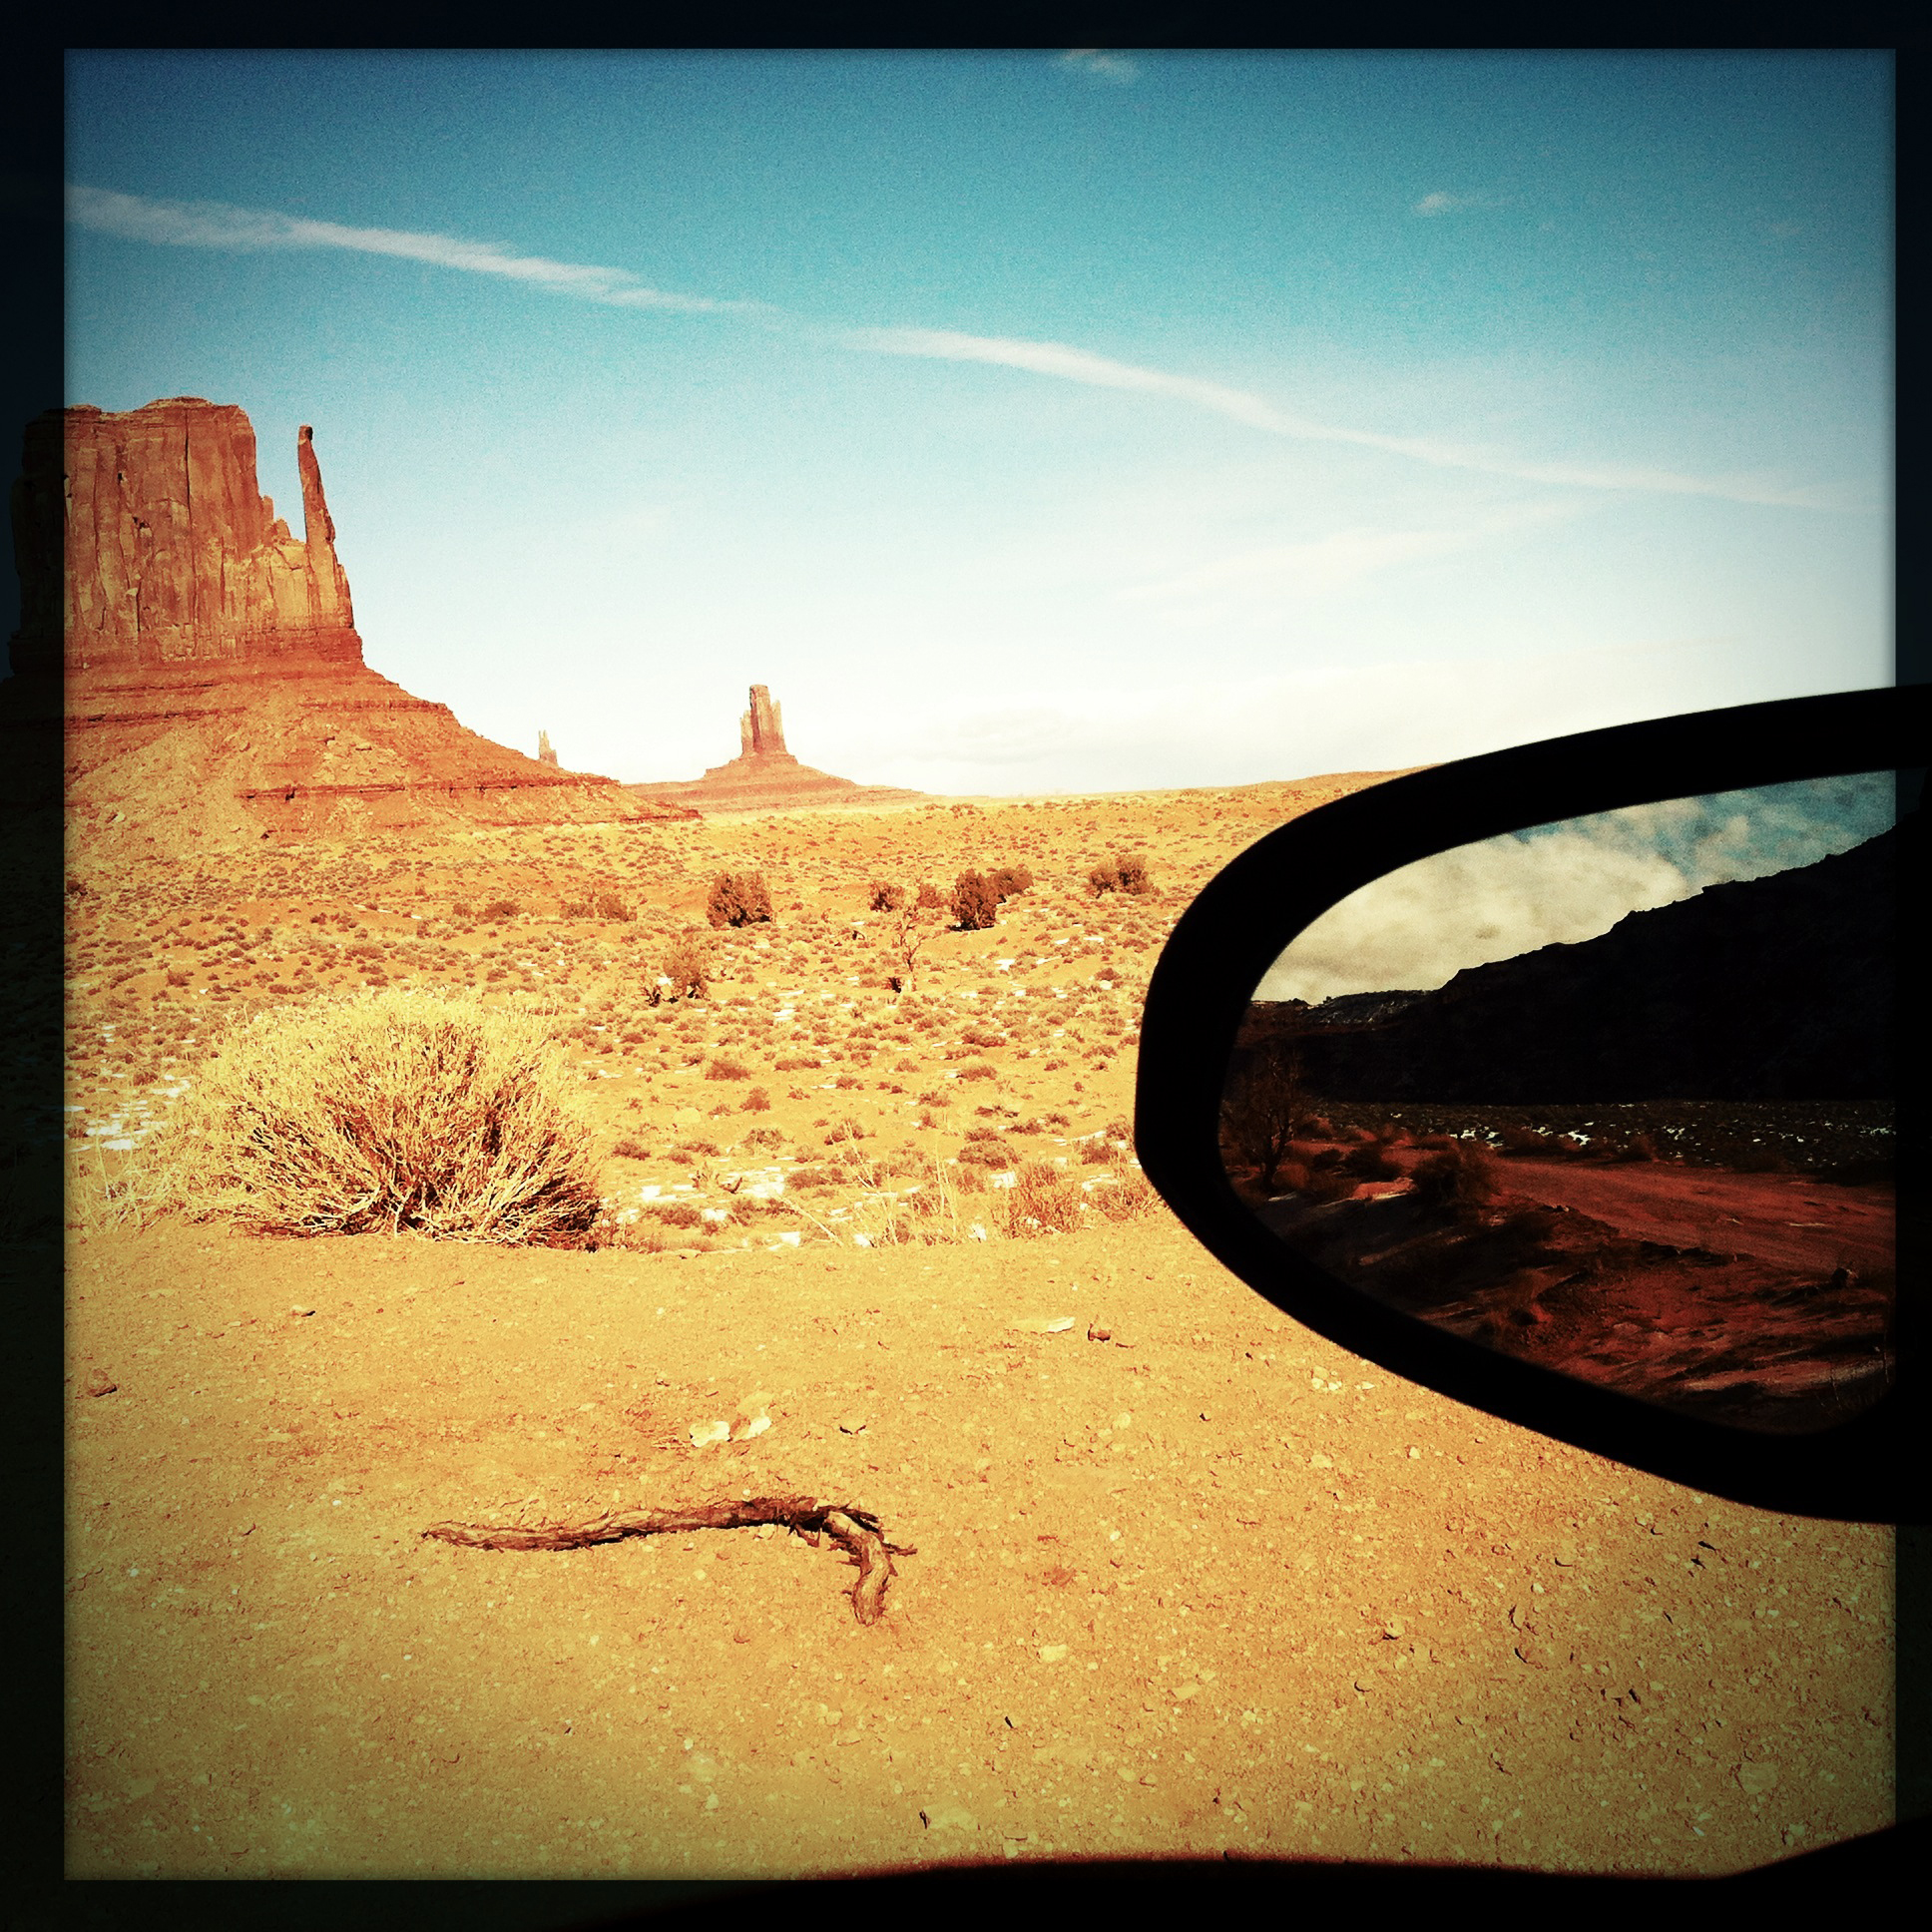 monument_valley_nov13.jpg